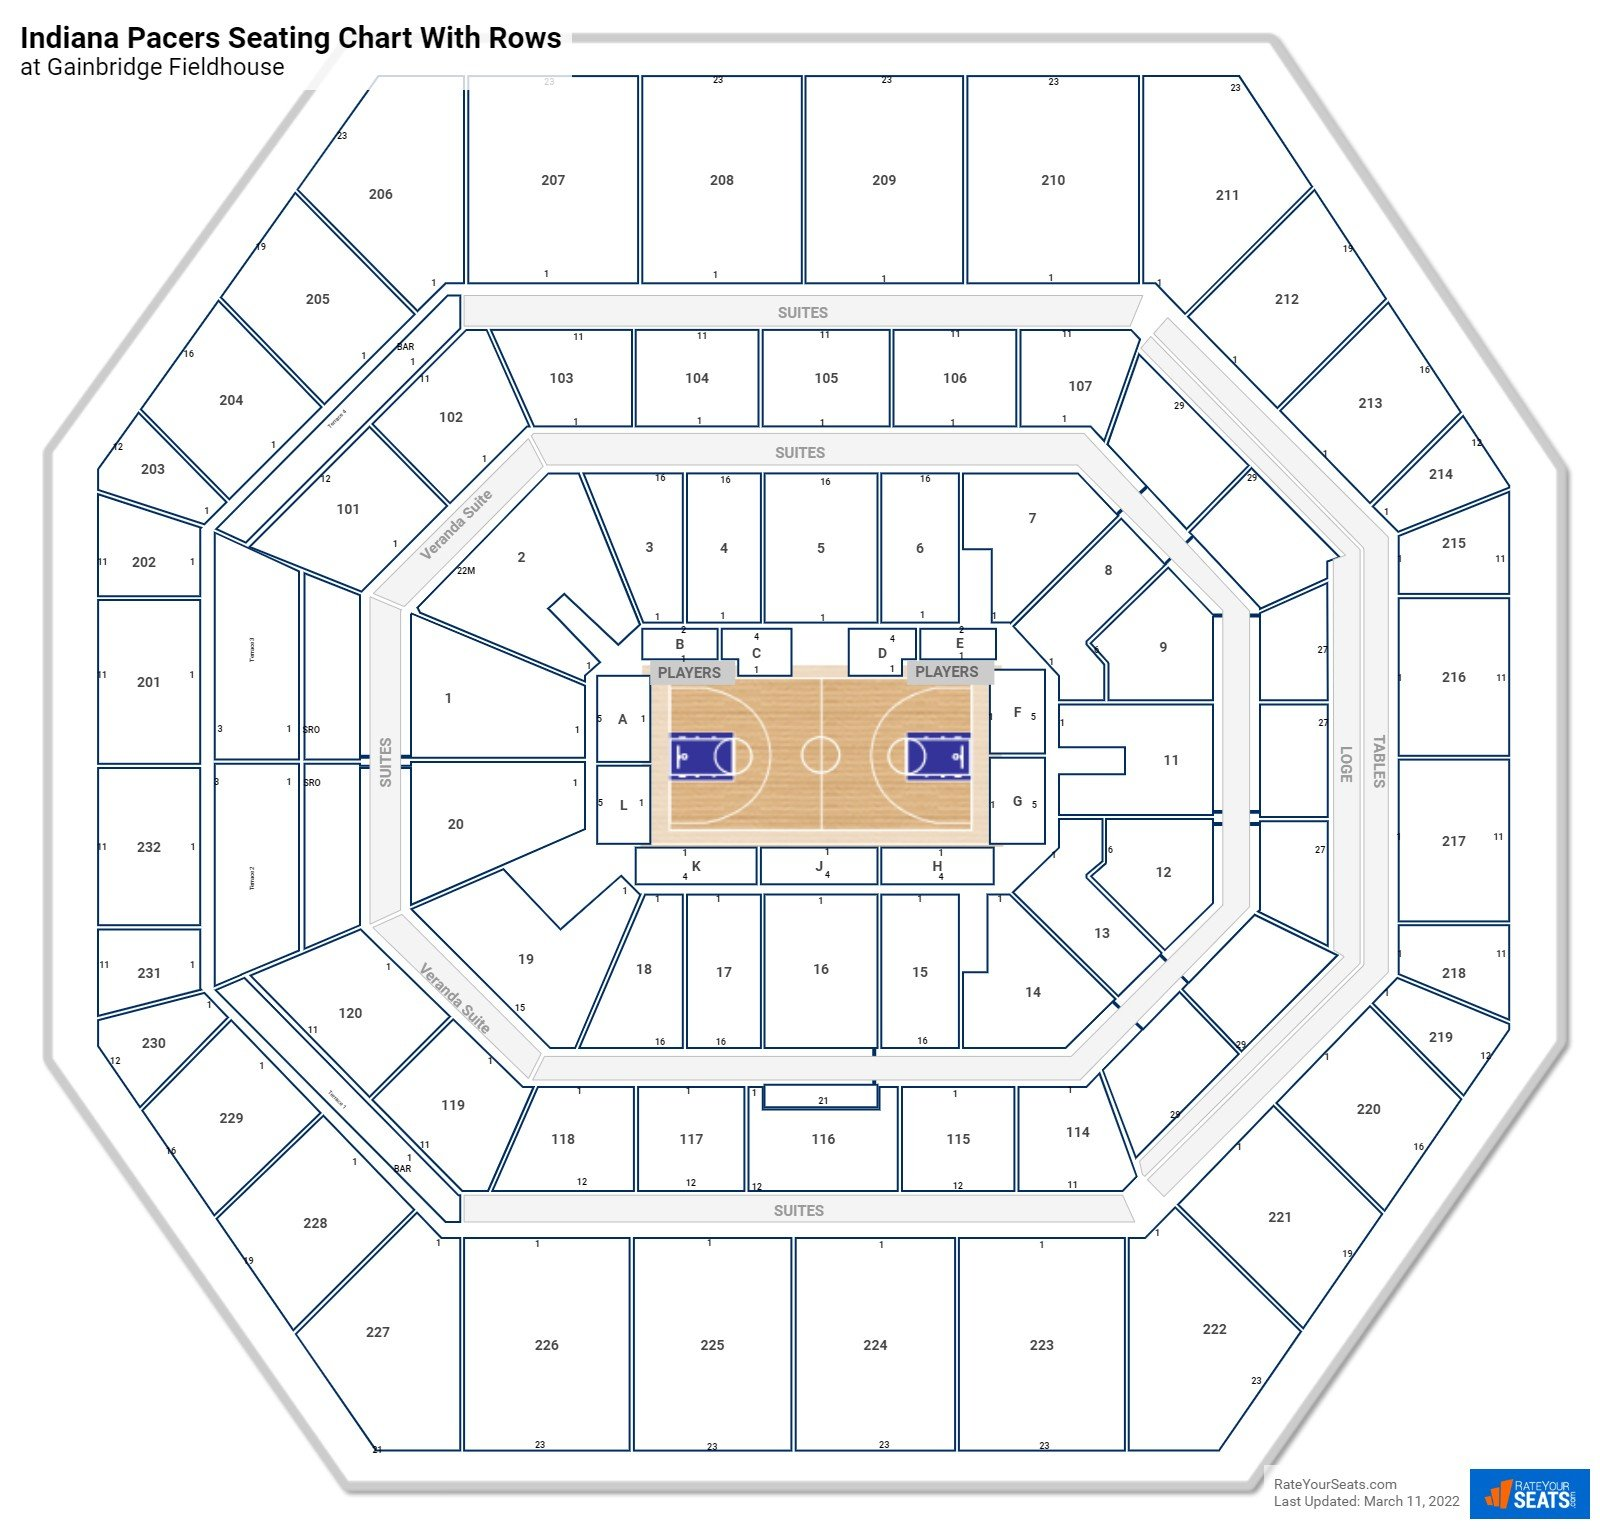 Bankers Life Fieldhouse seating chart with rows basketball